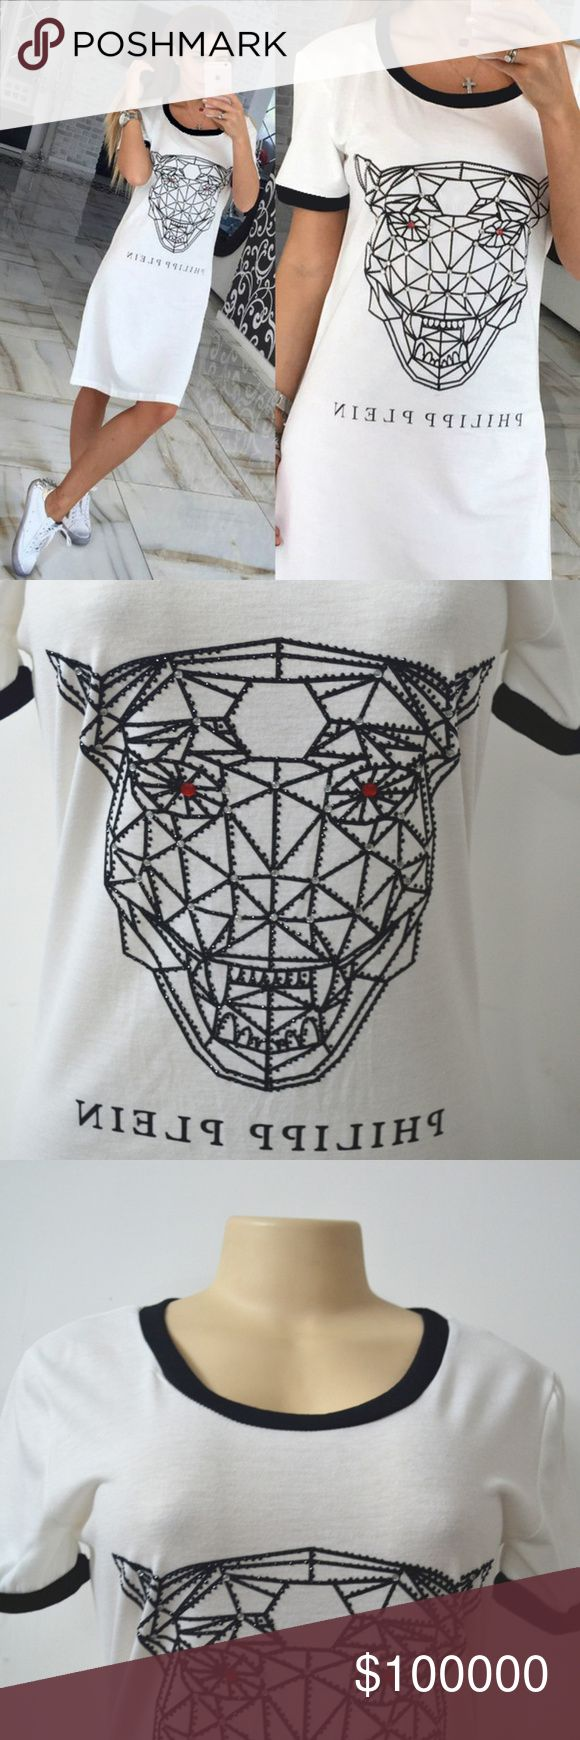 News programs and projects of jagisa paper bags - Pre Order Plein Shirt Dress S Xl 24 When Available Gorgeous Jaguar Head